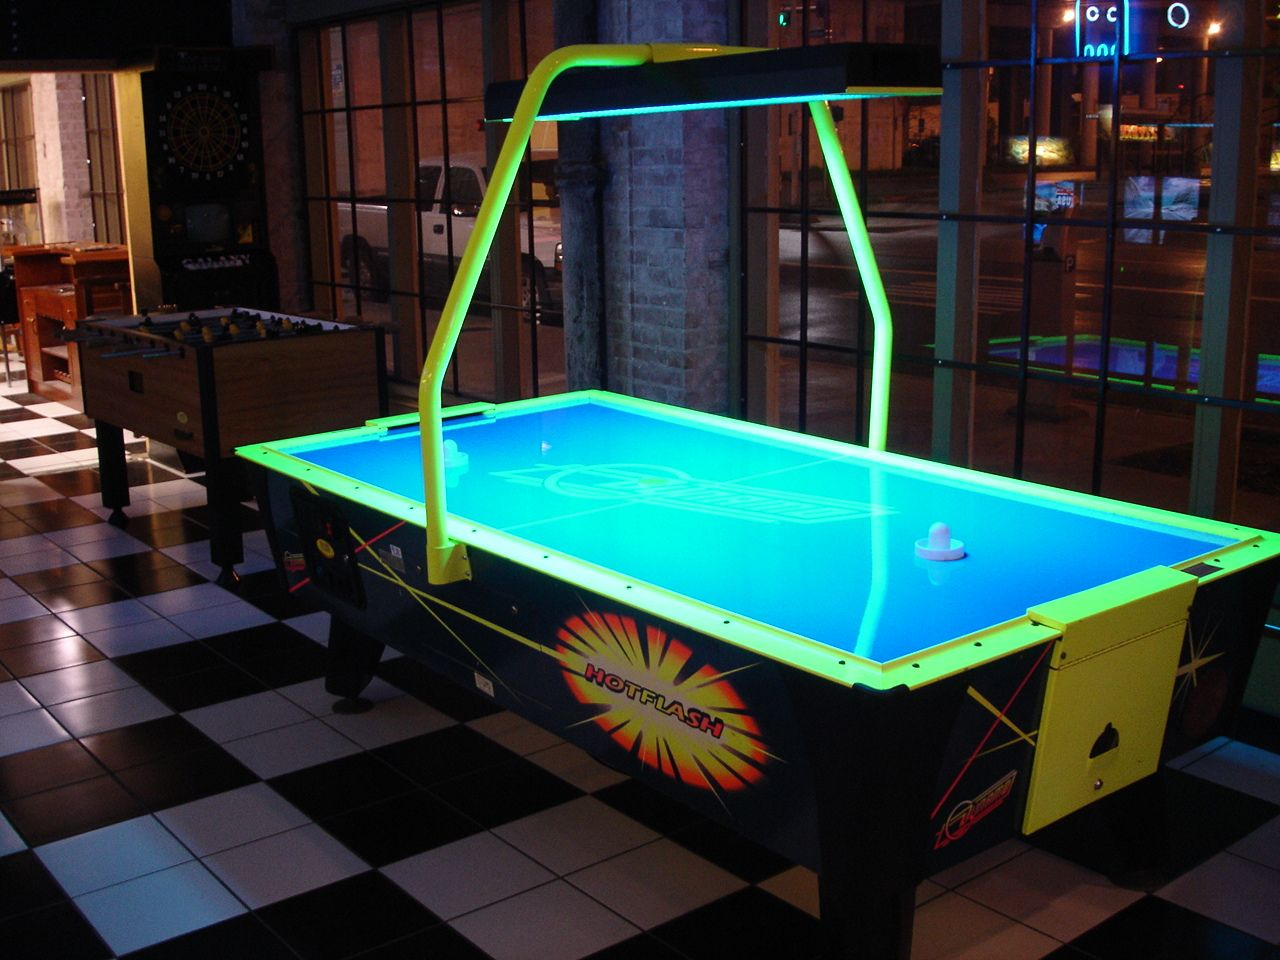 Classic Man Cave Zen : Roy moore and his reign of air hockey terror!!! ; arcade